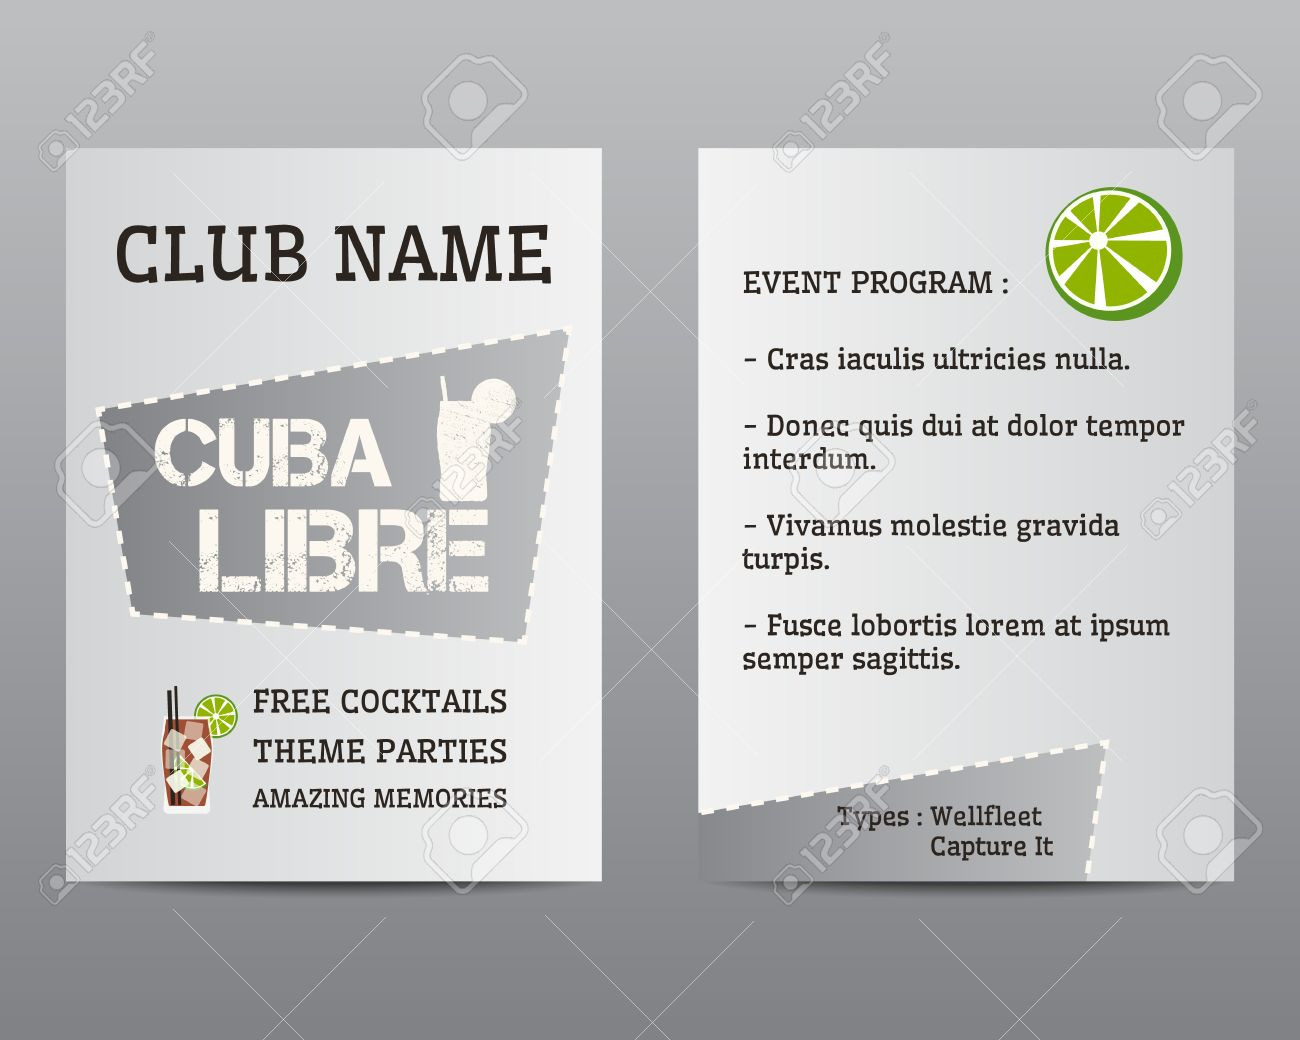 Summer Cocktail Party Flyer Invitation Template With Cuba Libre – Cocktail Party Invite Template